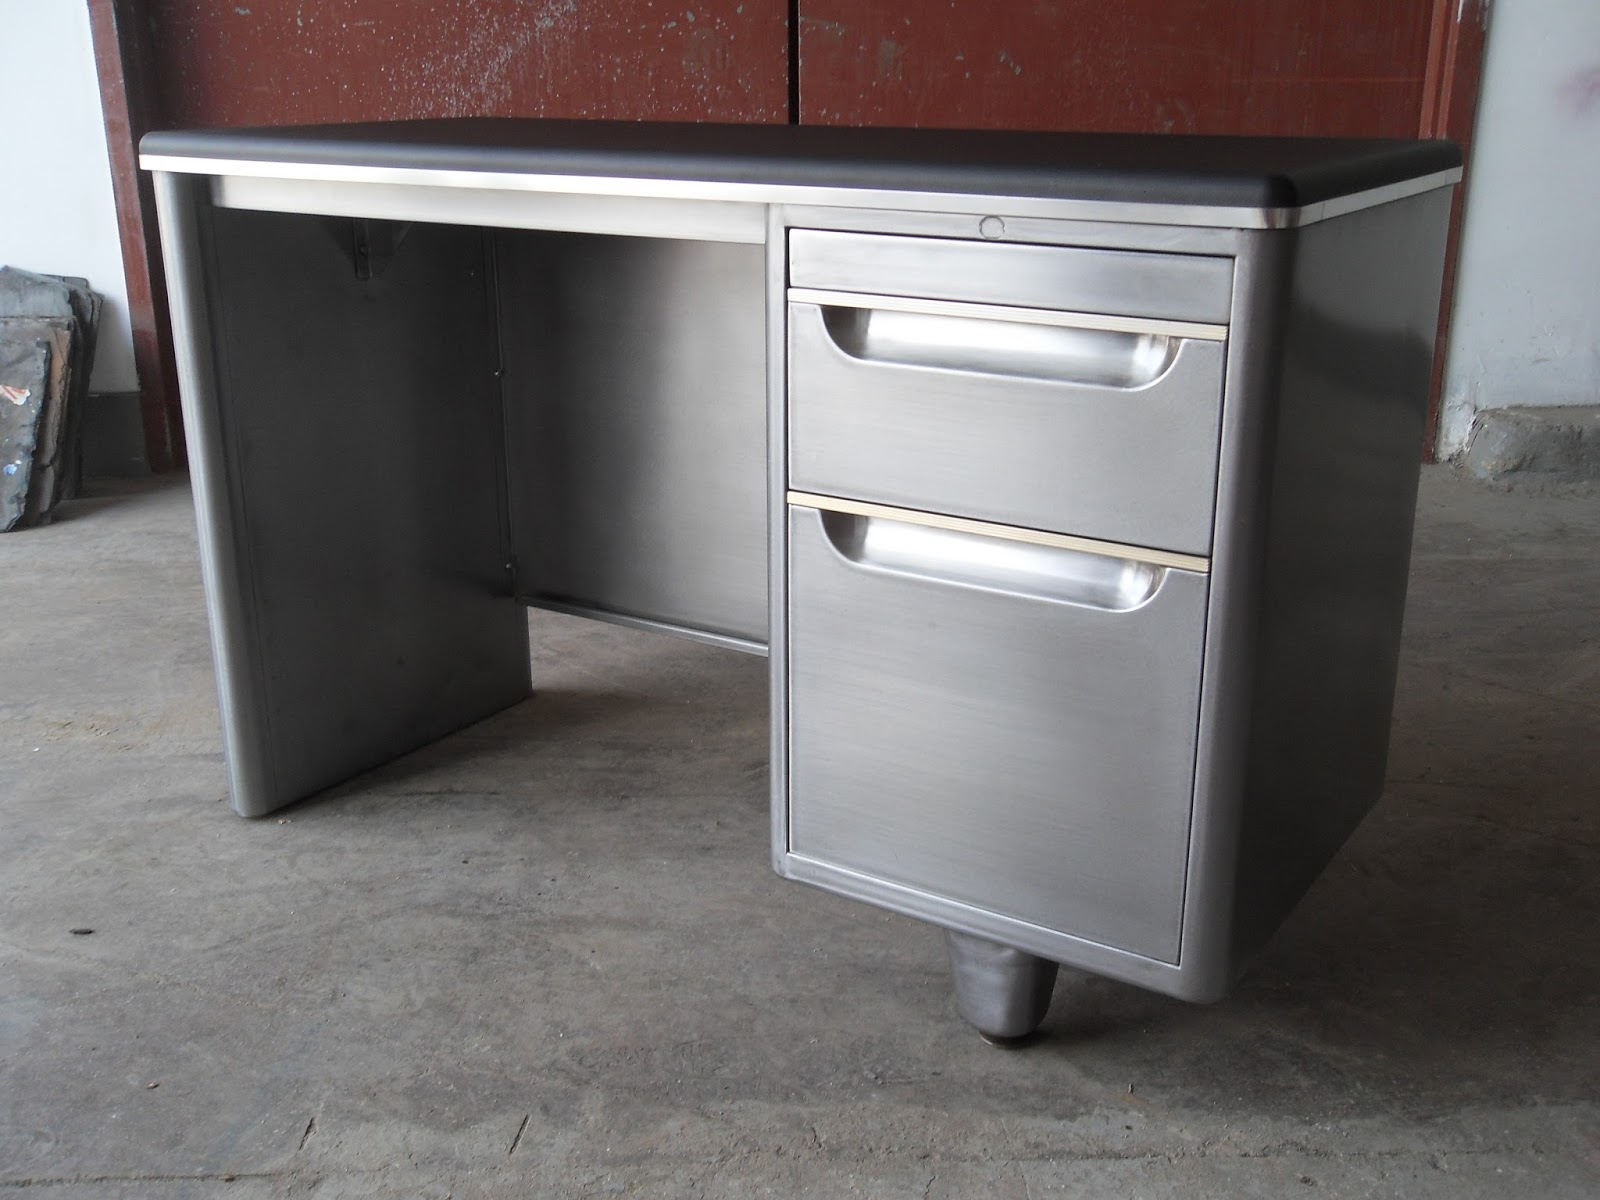 rehab tanker pedestal special desk order single image natural refinished cropped